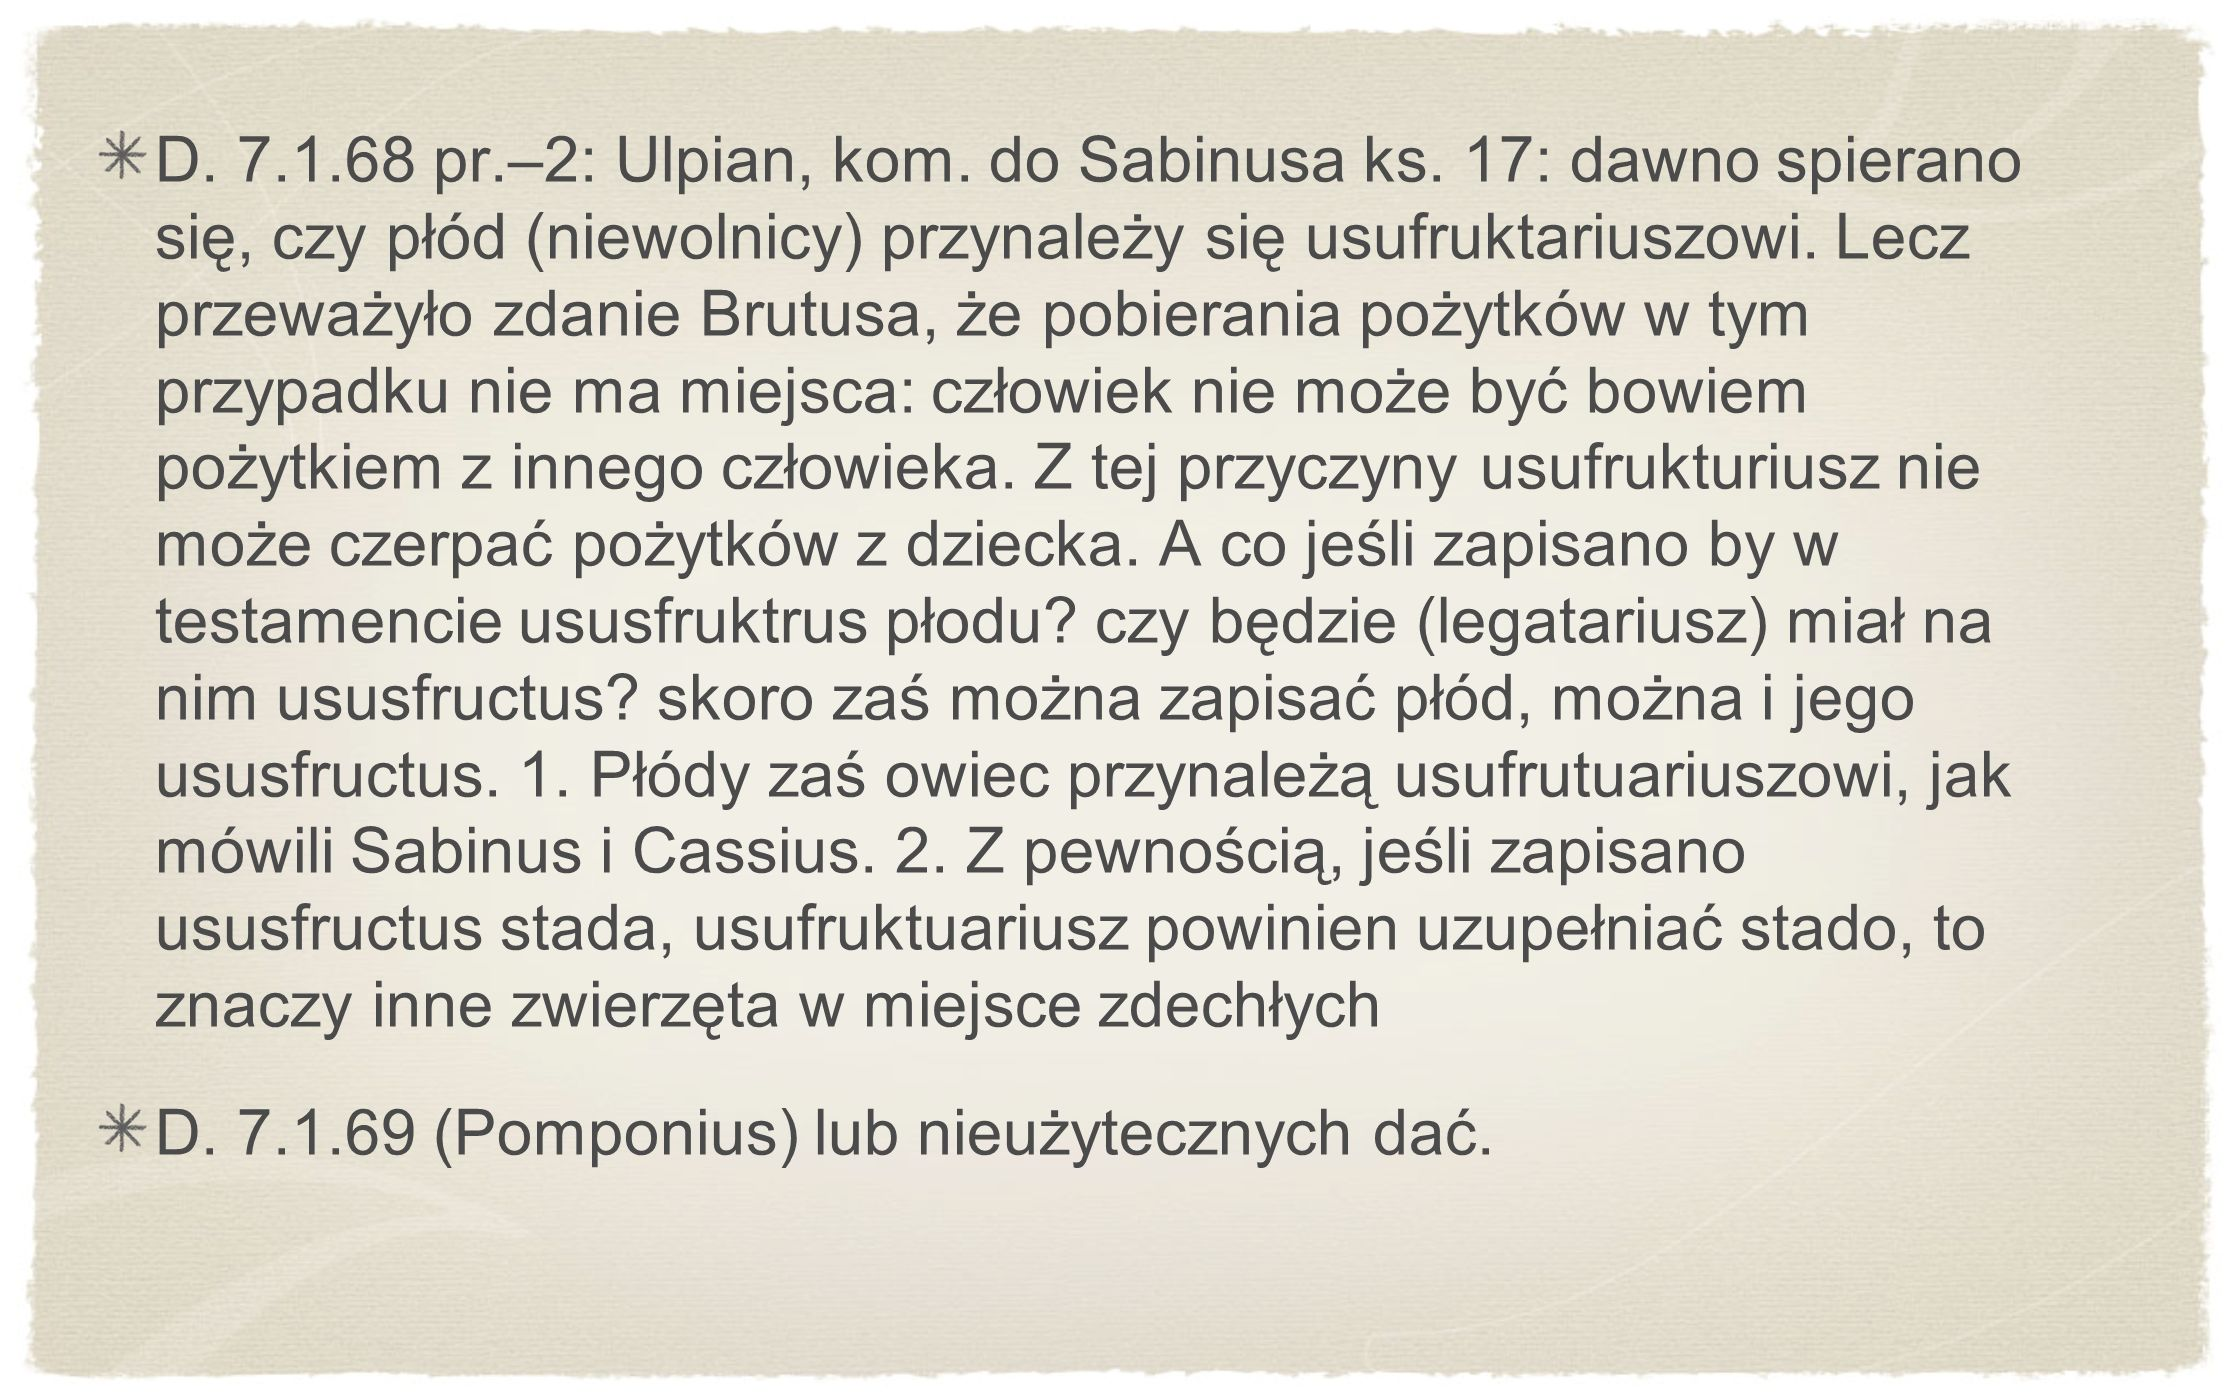 D. 7. 1. 68 pr. –2: Ulpian, kom. do Sabinusa ks